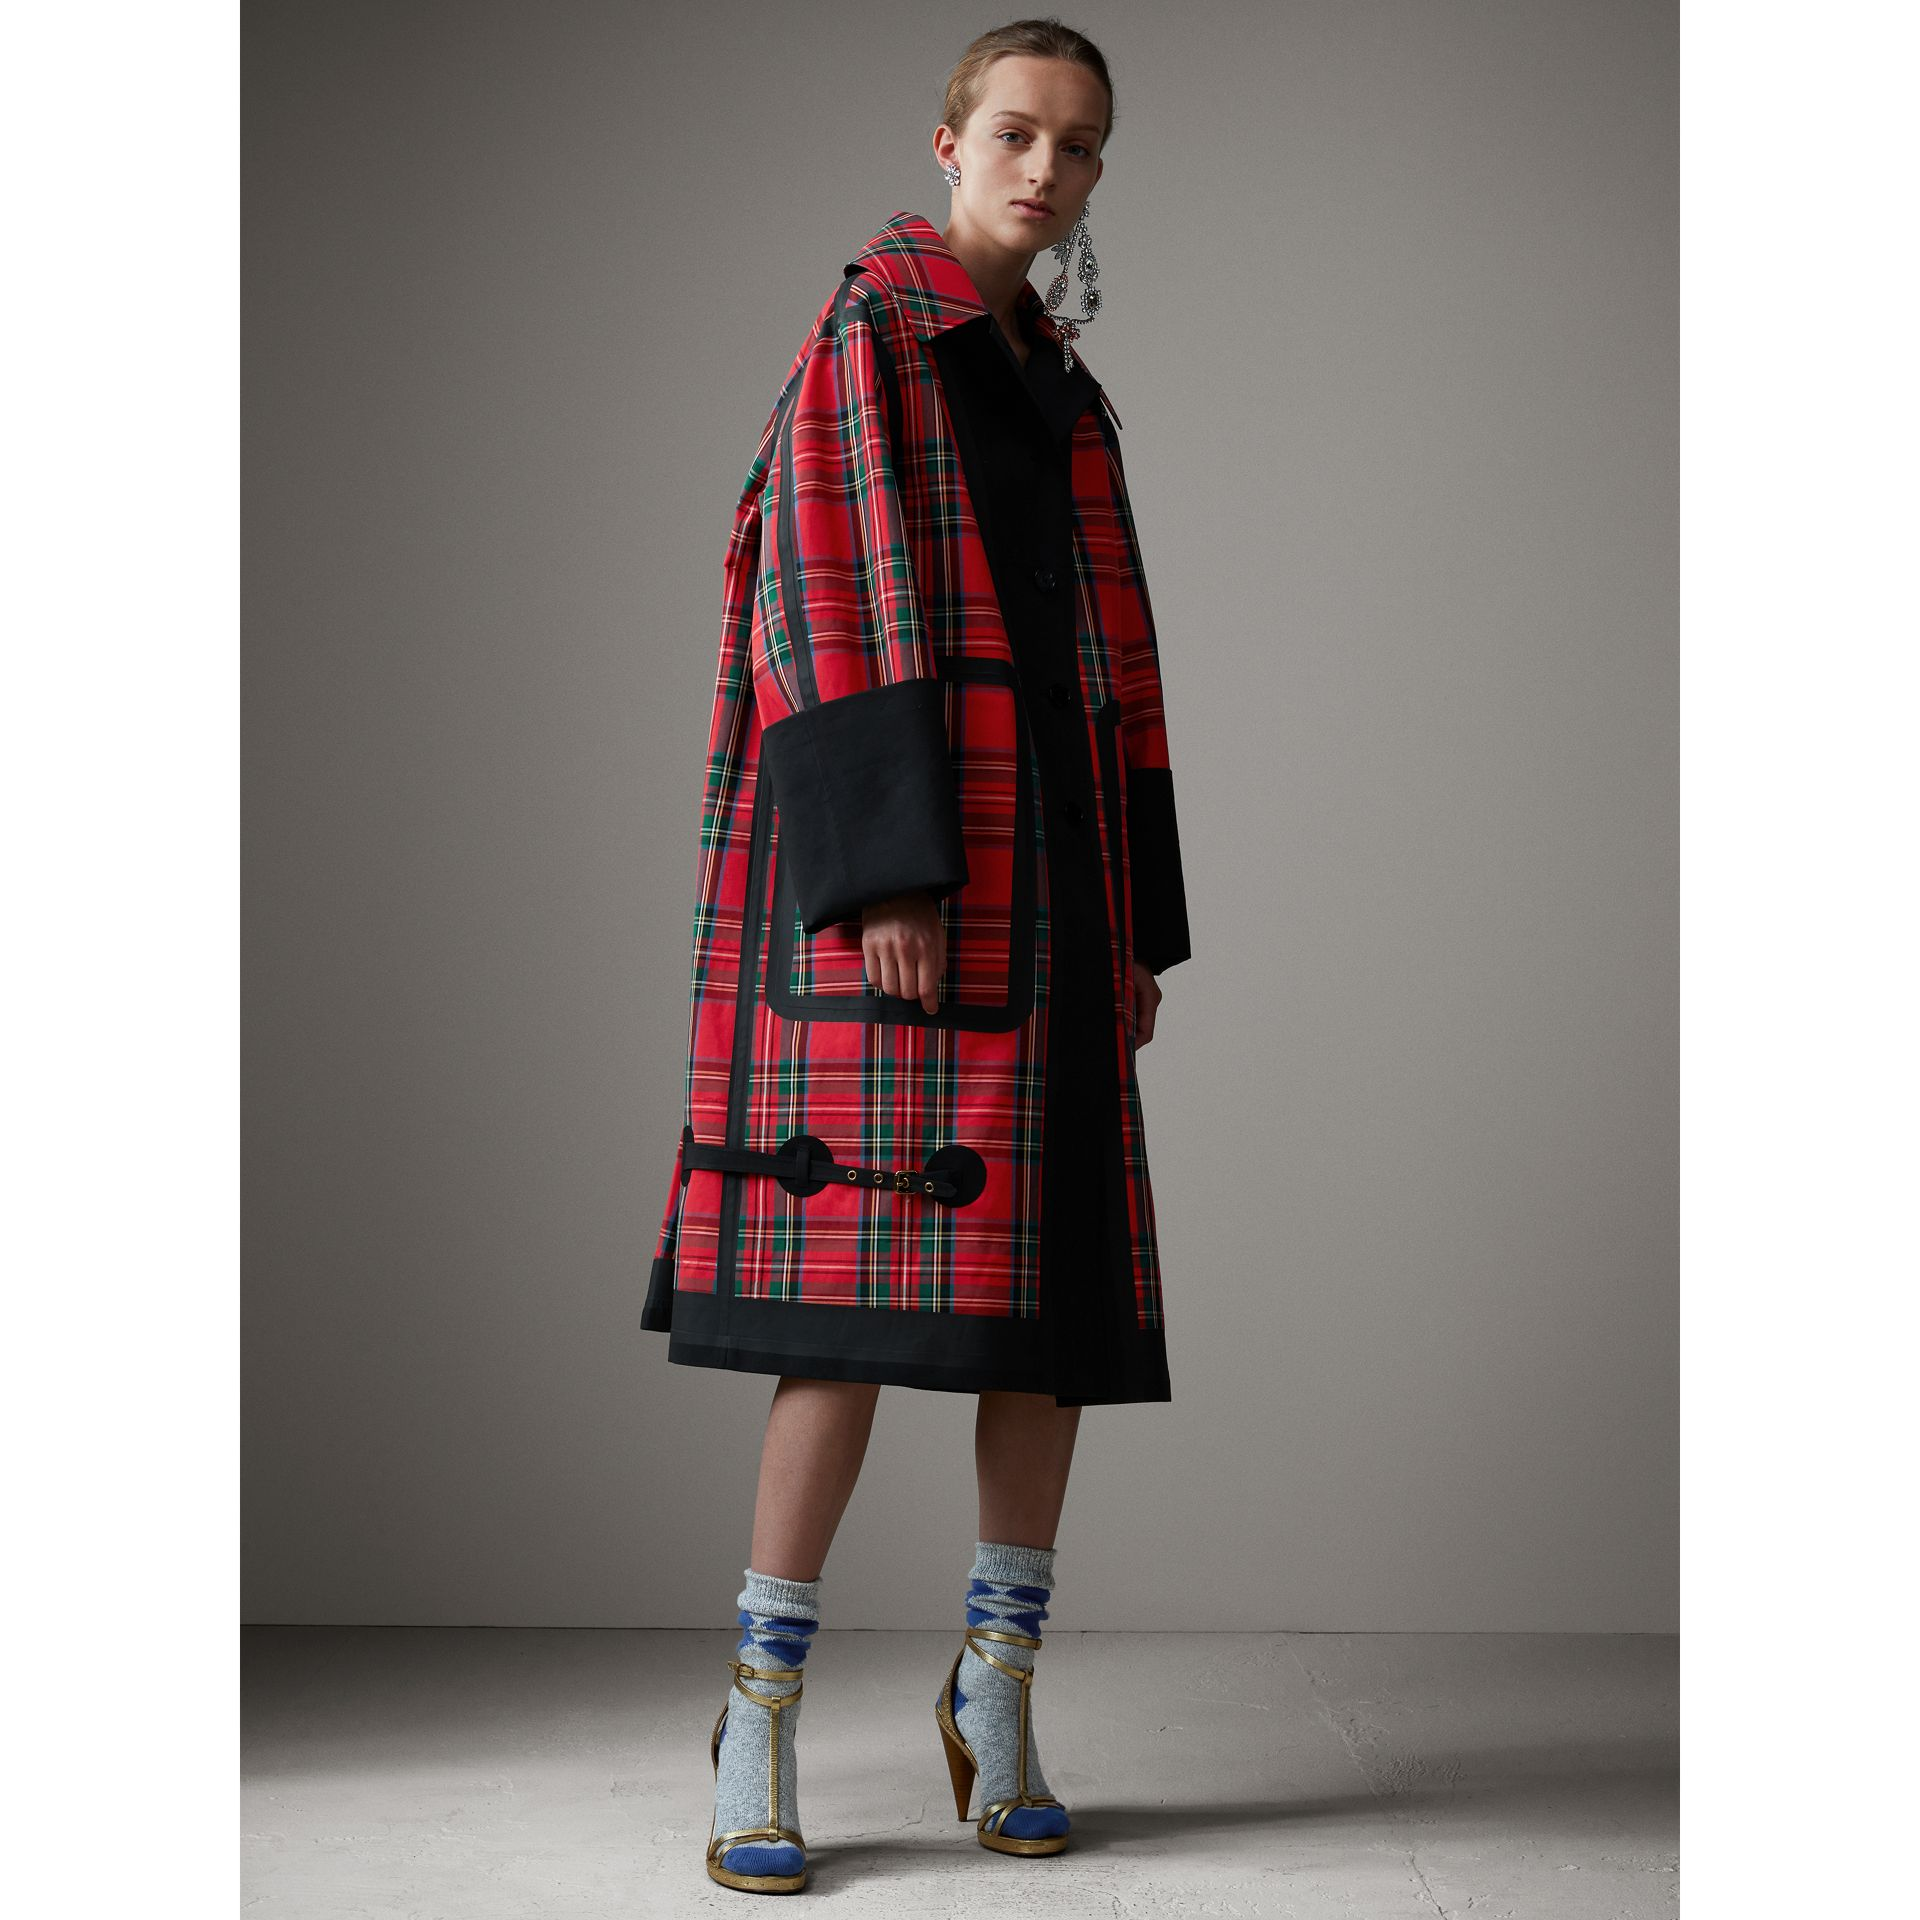 Tartan Bonded Cotton Seam-sealed Oversized Car Coat in Black - Women | Burberry United Kingdom - gallery image 4